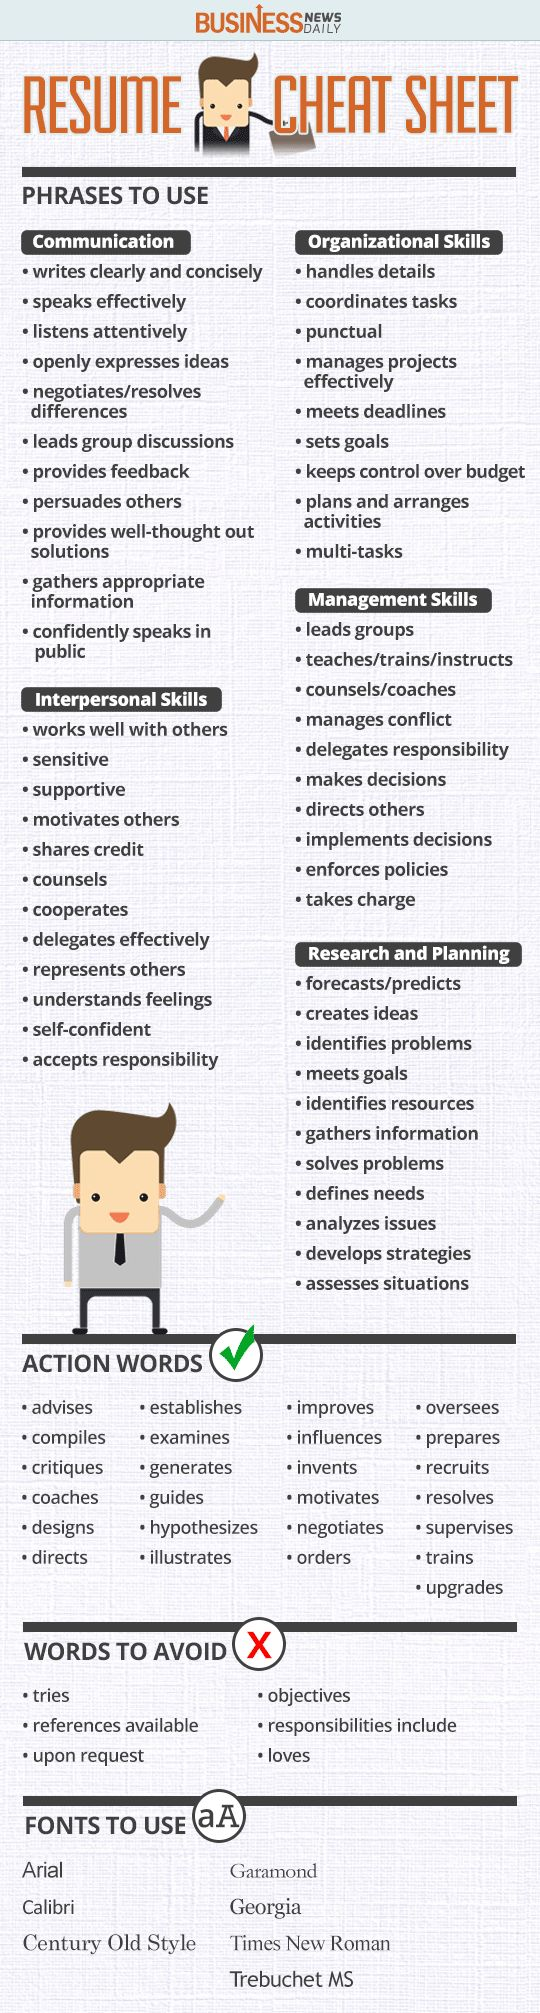 Opposenewapstandardsus  Unusual  Ideas About Resume On Pinterest  Cv Format Resume Cv And  With Marvelous Resume Cheat Sheet Infographic Andrews Almost Done With A Complete Unit On Employment Which With Cool Clinical Research Coordinator Resume Also Visual Merchandising Resume In Addition Example Job Resume And Resume Outline Example As Well As Free Create A Resume Additionally Dental Assistant Resume Objective From Pinterestcom With Opposenewapstandardsus  Marvelous  Ideas About Resume On Pinterest  Cv Format Resume Cv And  With Cool Resume Cheat Sheet Infographic Andrews Almost Done With A Complete Unit On Employment Which And Unusual Clinical Research Coordinator Resume Also Visual Merchandising Resume In Addition Example Job Resume From Pinterestcom